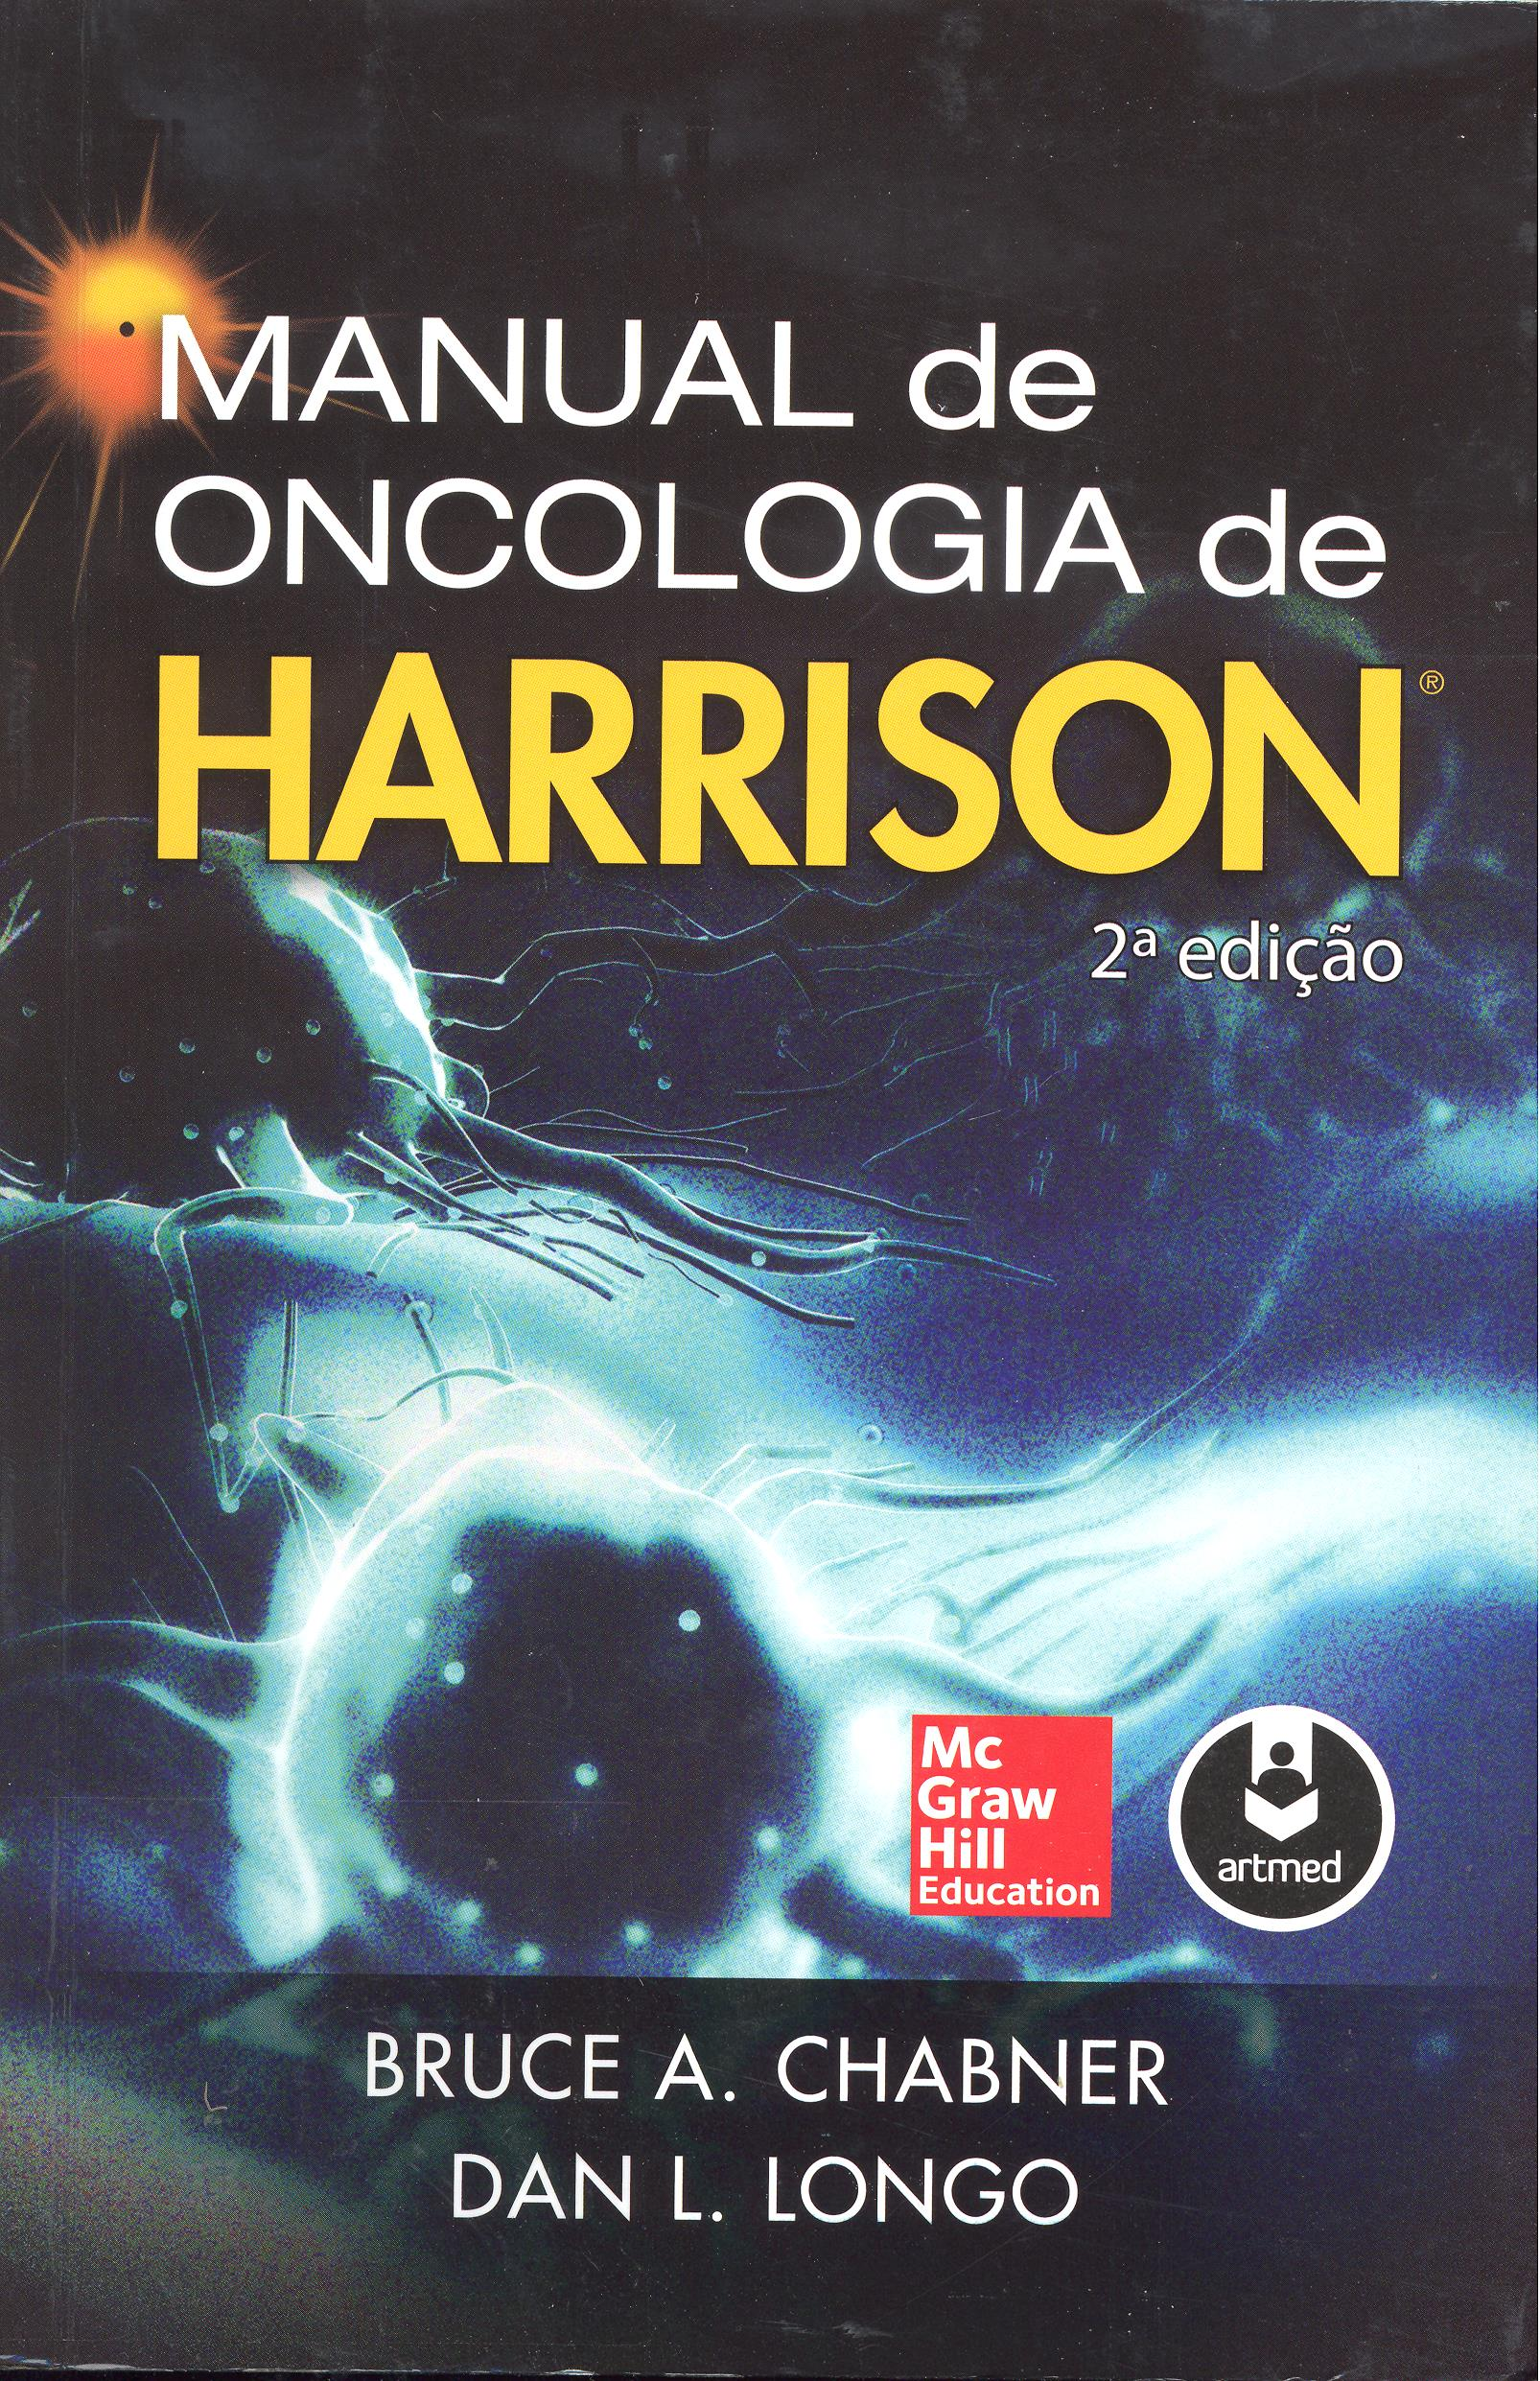 manual de oncologia de Harrison 001